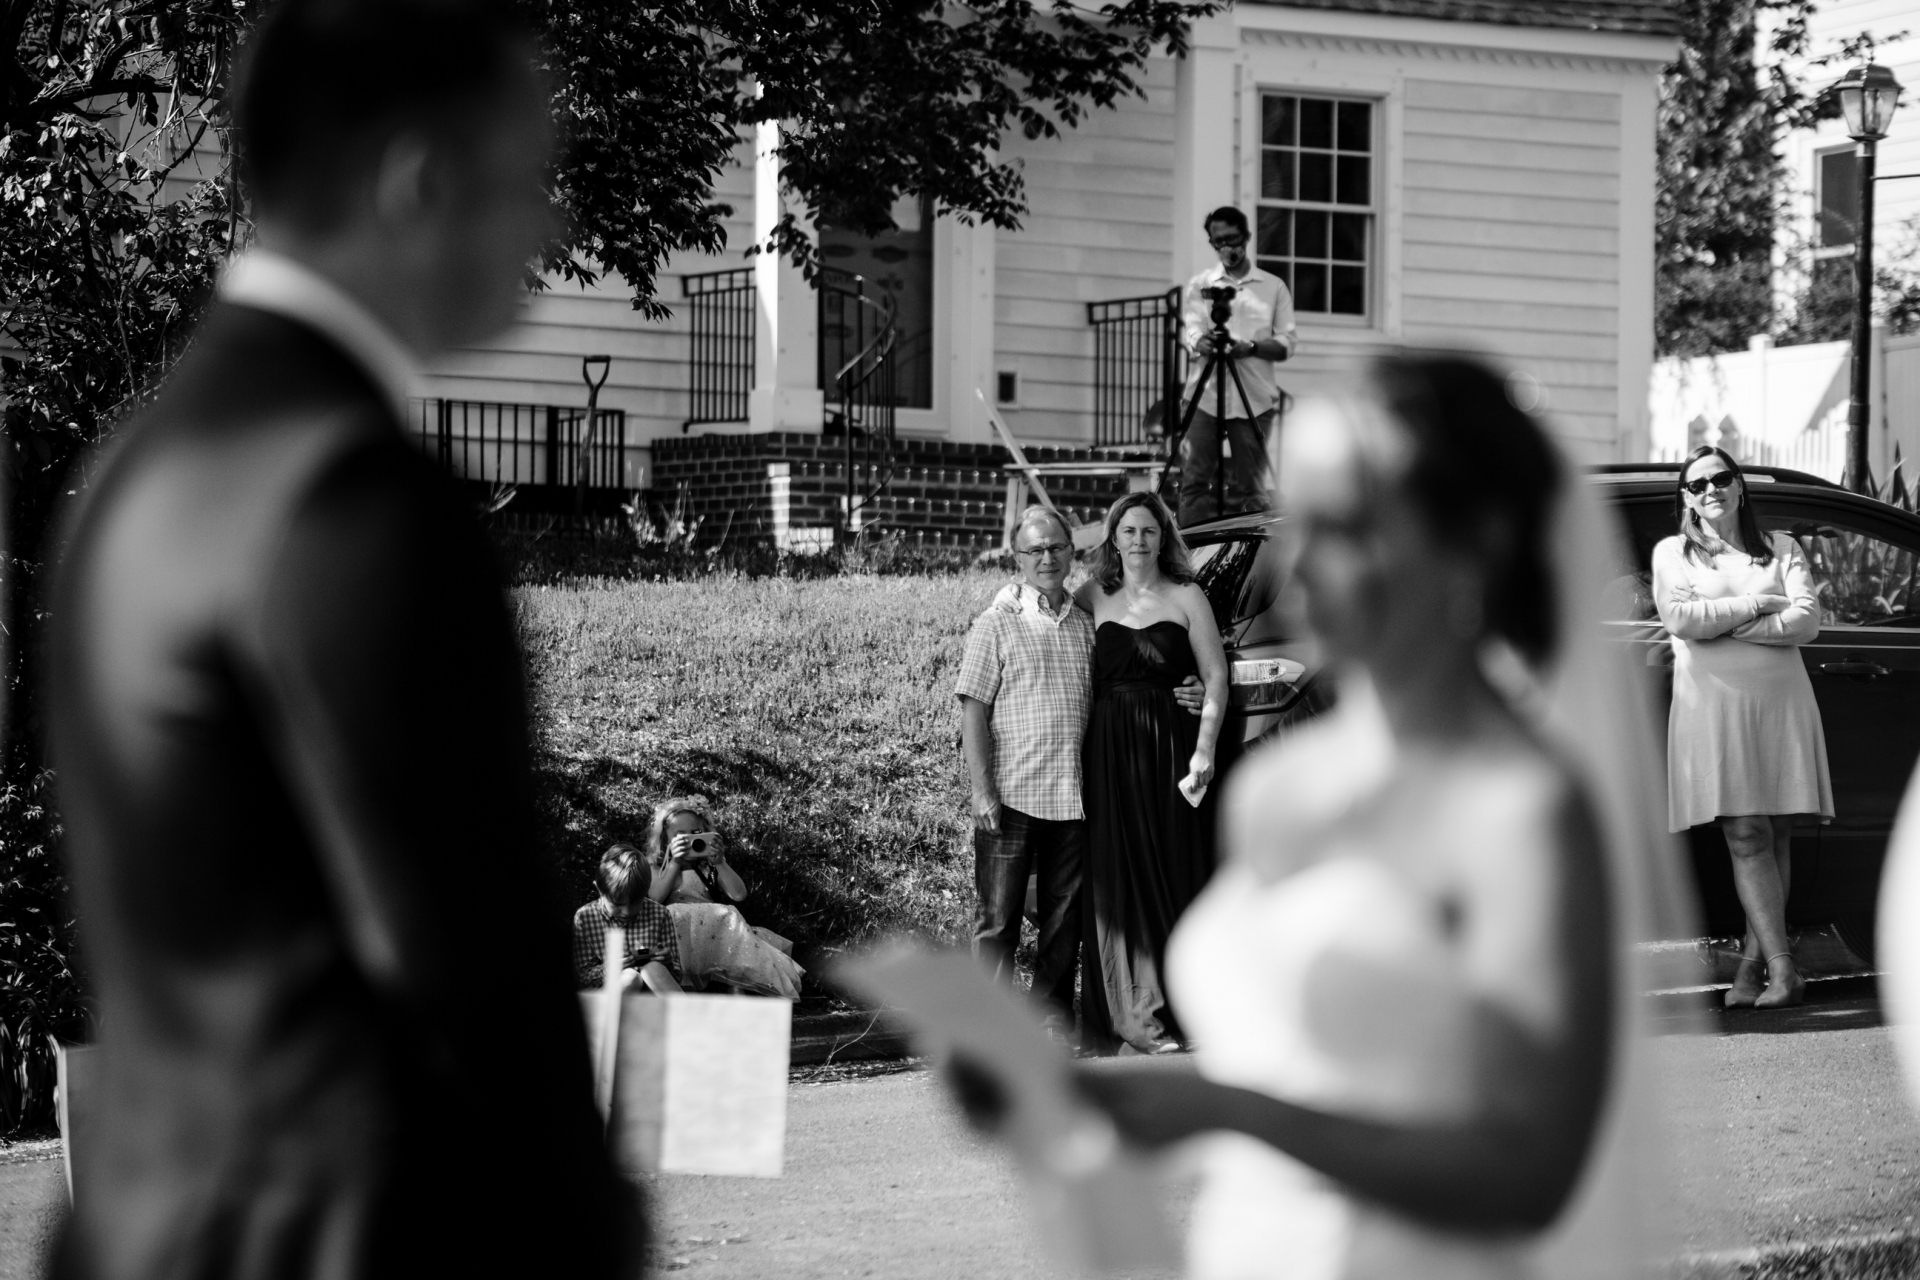 Outdoor Maryland Wedding Ceremony Photographer | Social distancing neighbors watch their private ceremony